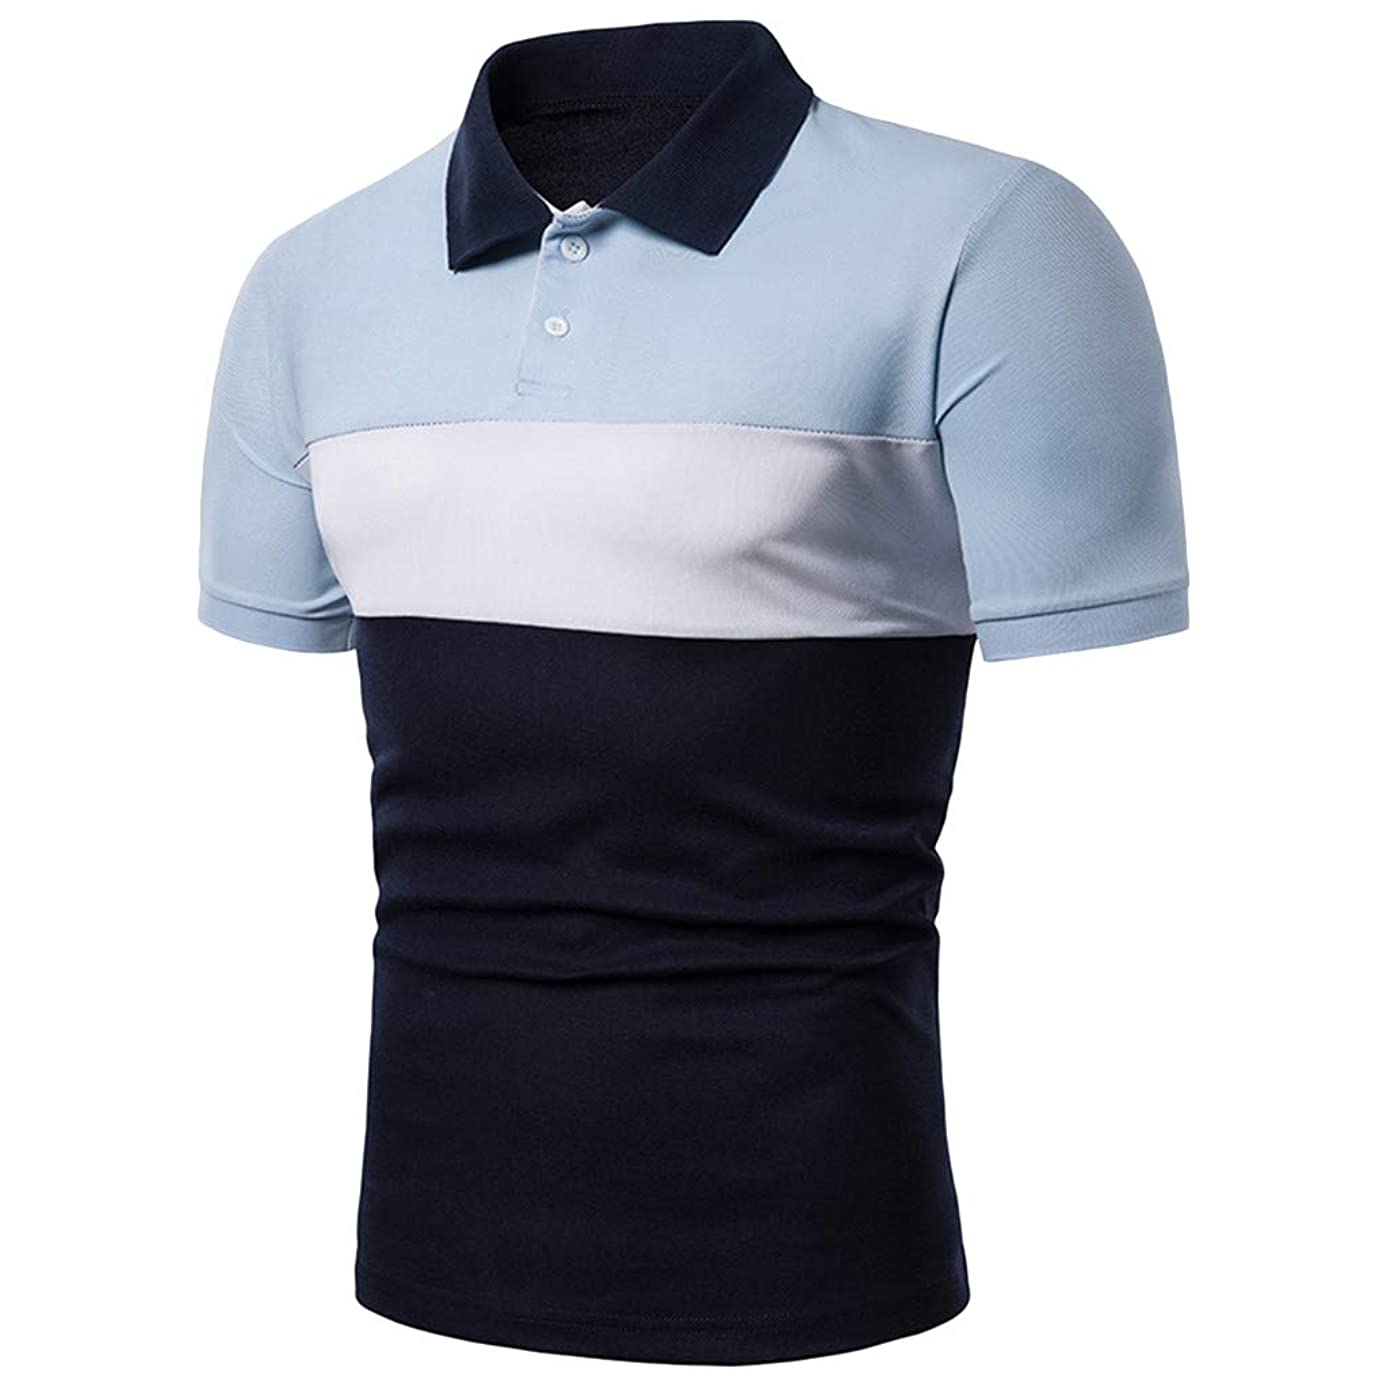 Men's Fashion Business Polo Shirt,MmNote Active Performance Sports Short Sleeve Textured Design Classic Fit Modern Fit